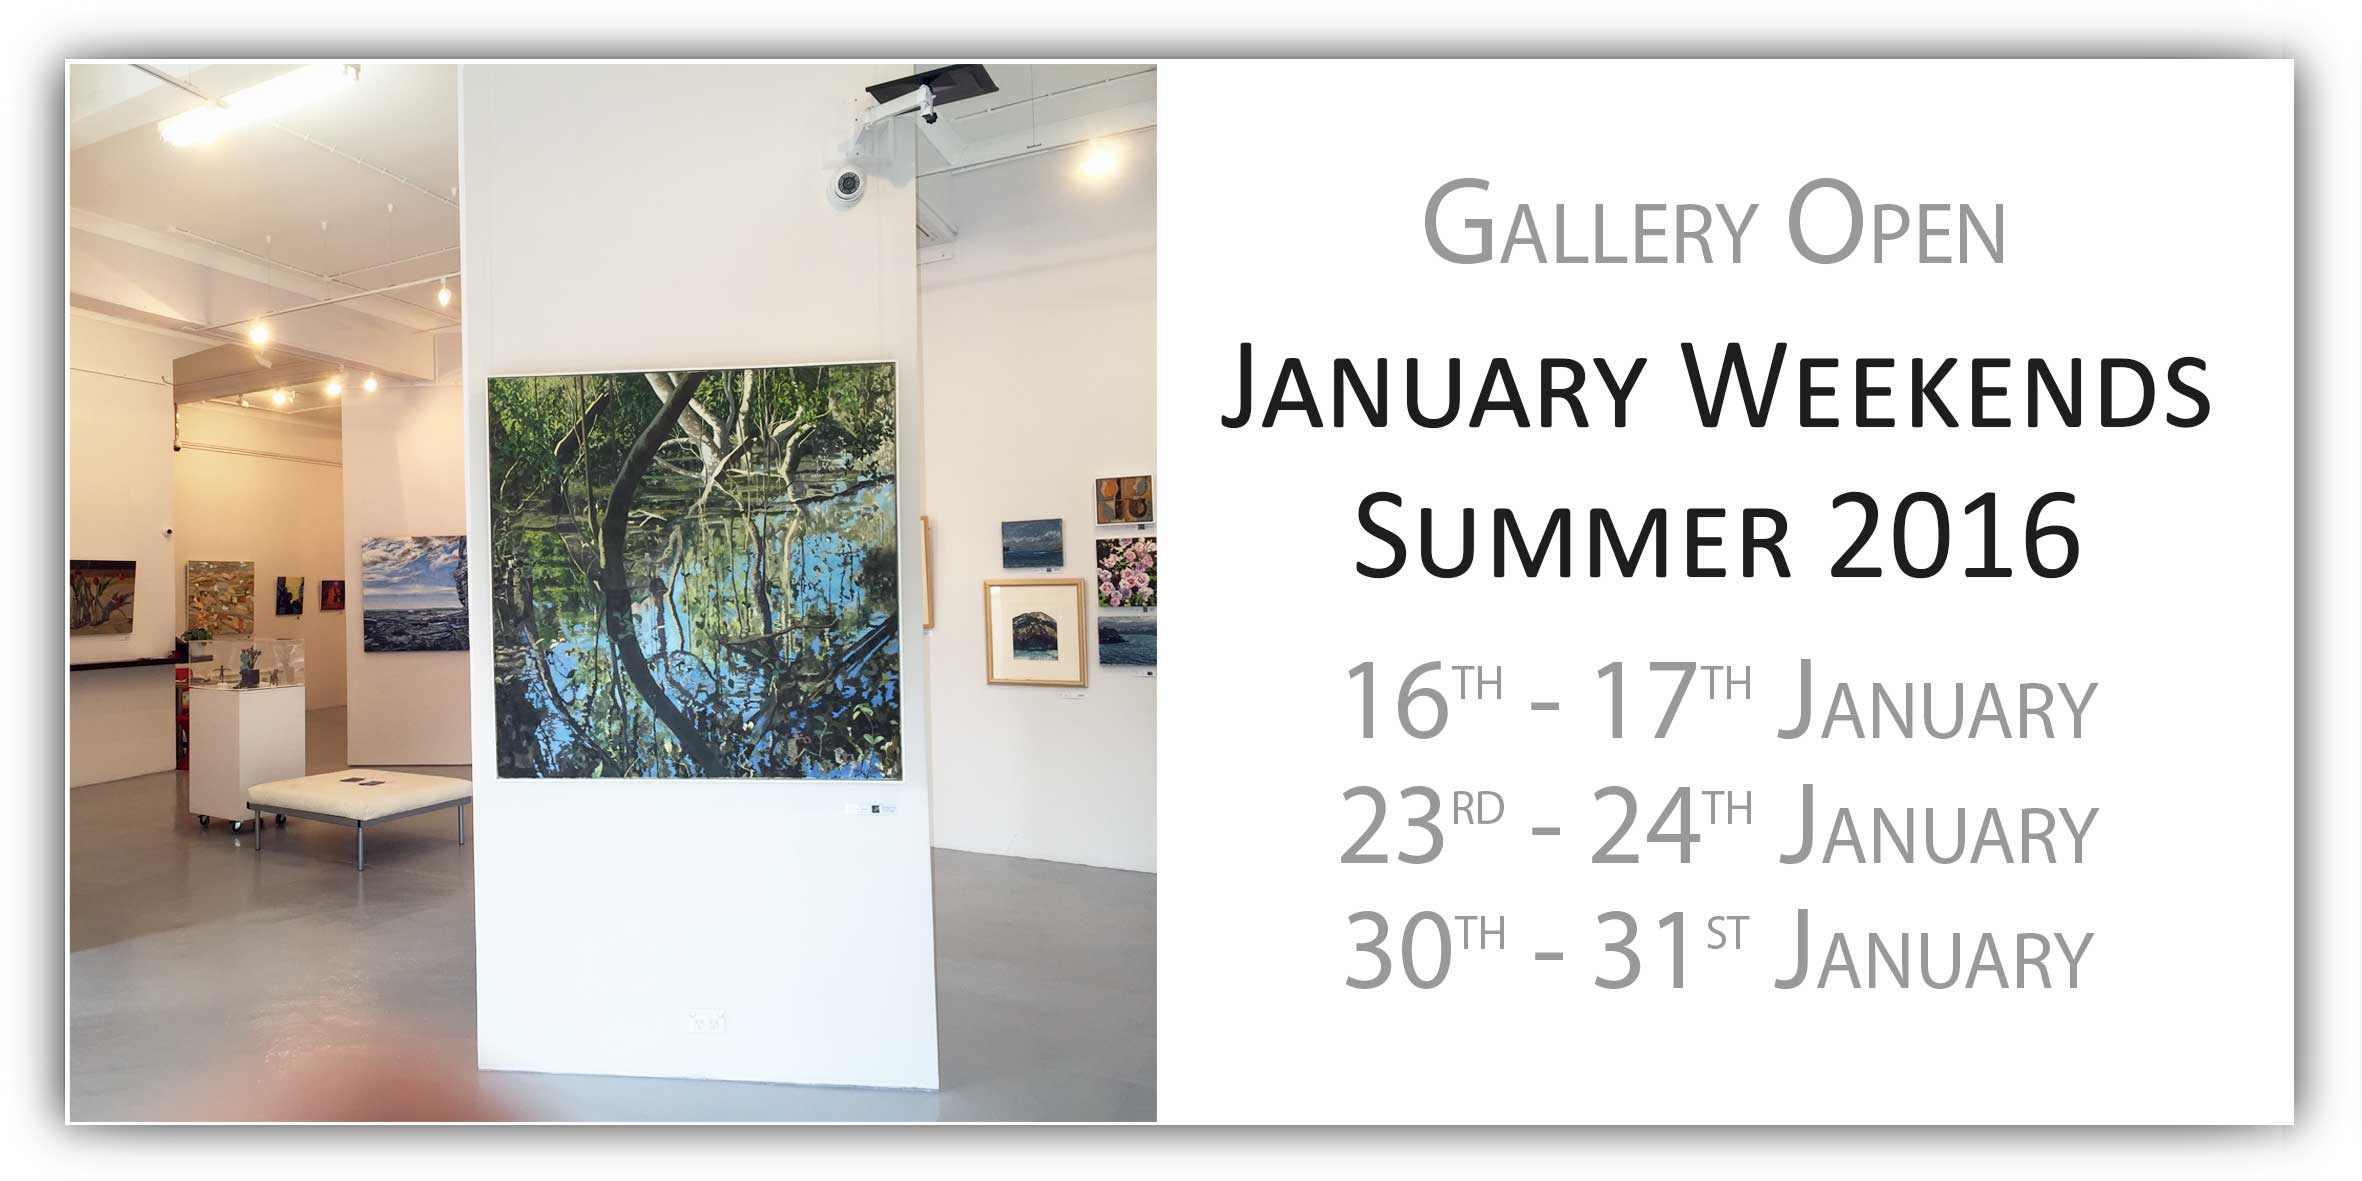 View Exhibition at Artsite Gallery. 16 - 31 January 2016: Group Exhibition - Summer Weekends.